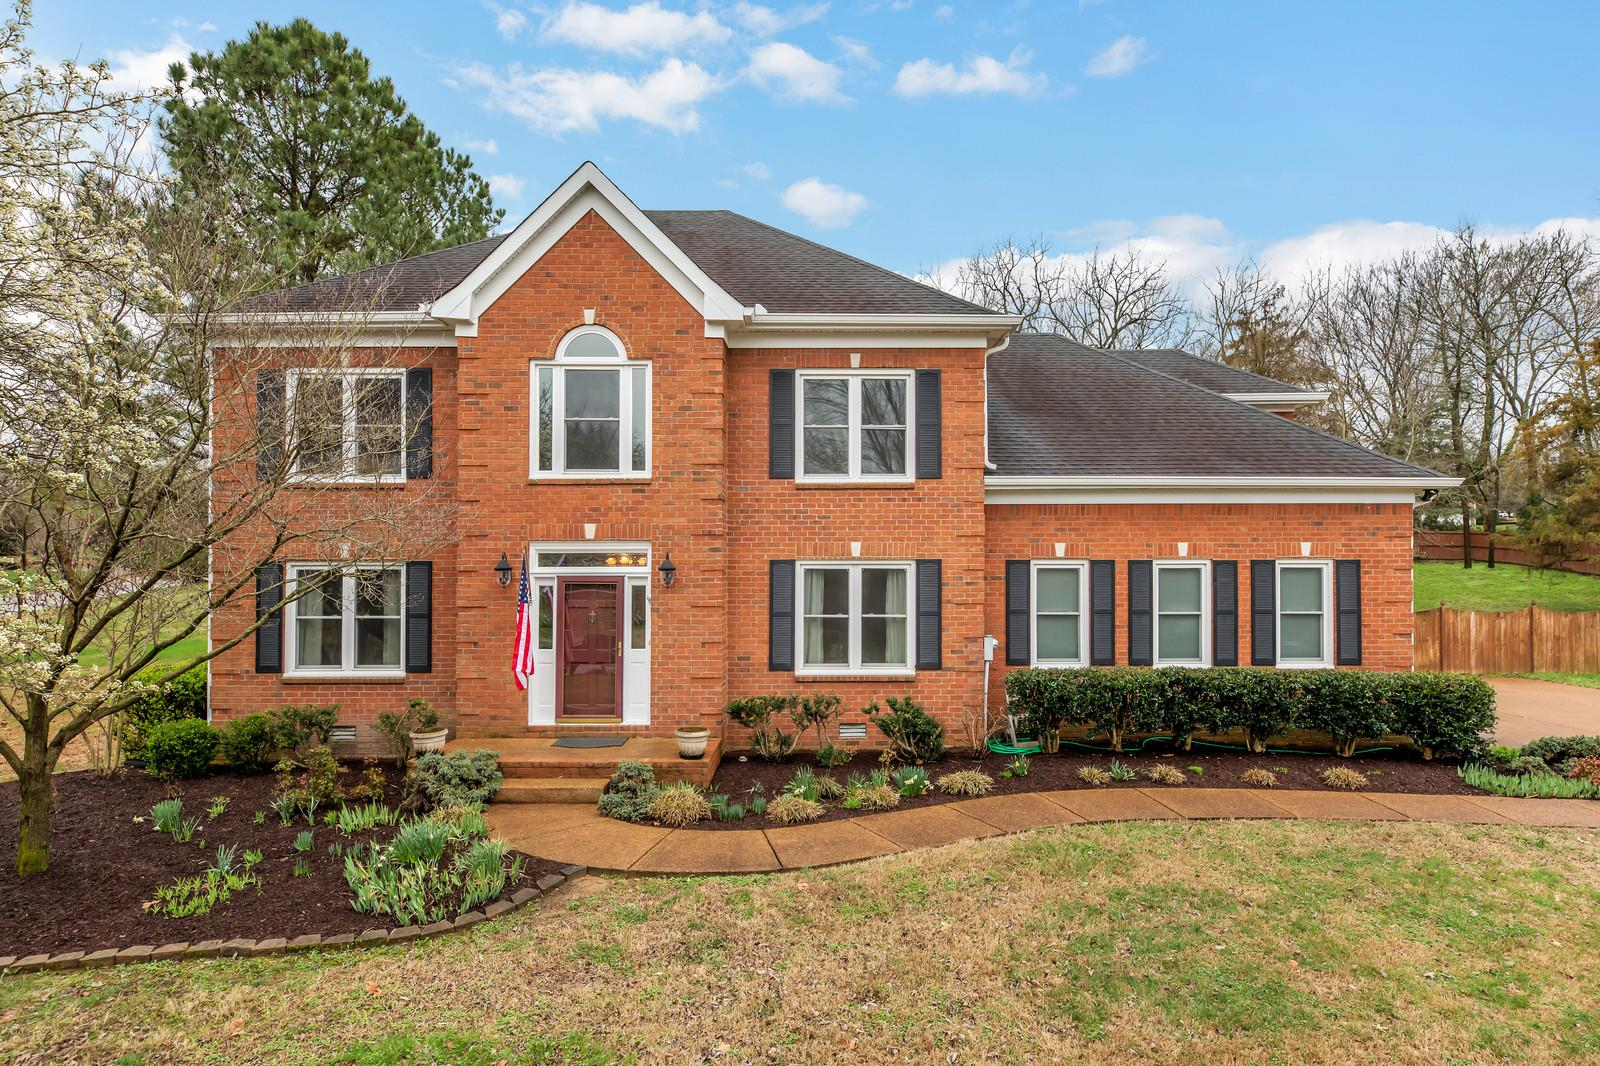 8211 Victory Trl, Brentwood, TN 37027